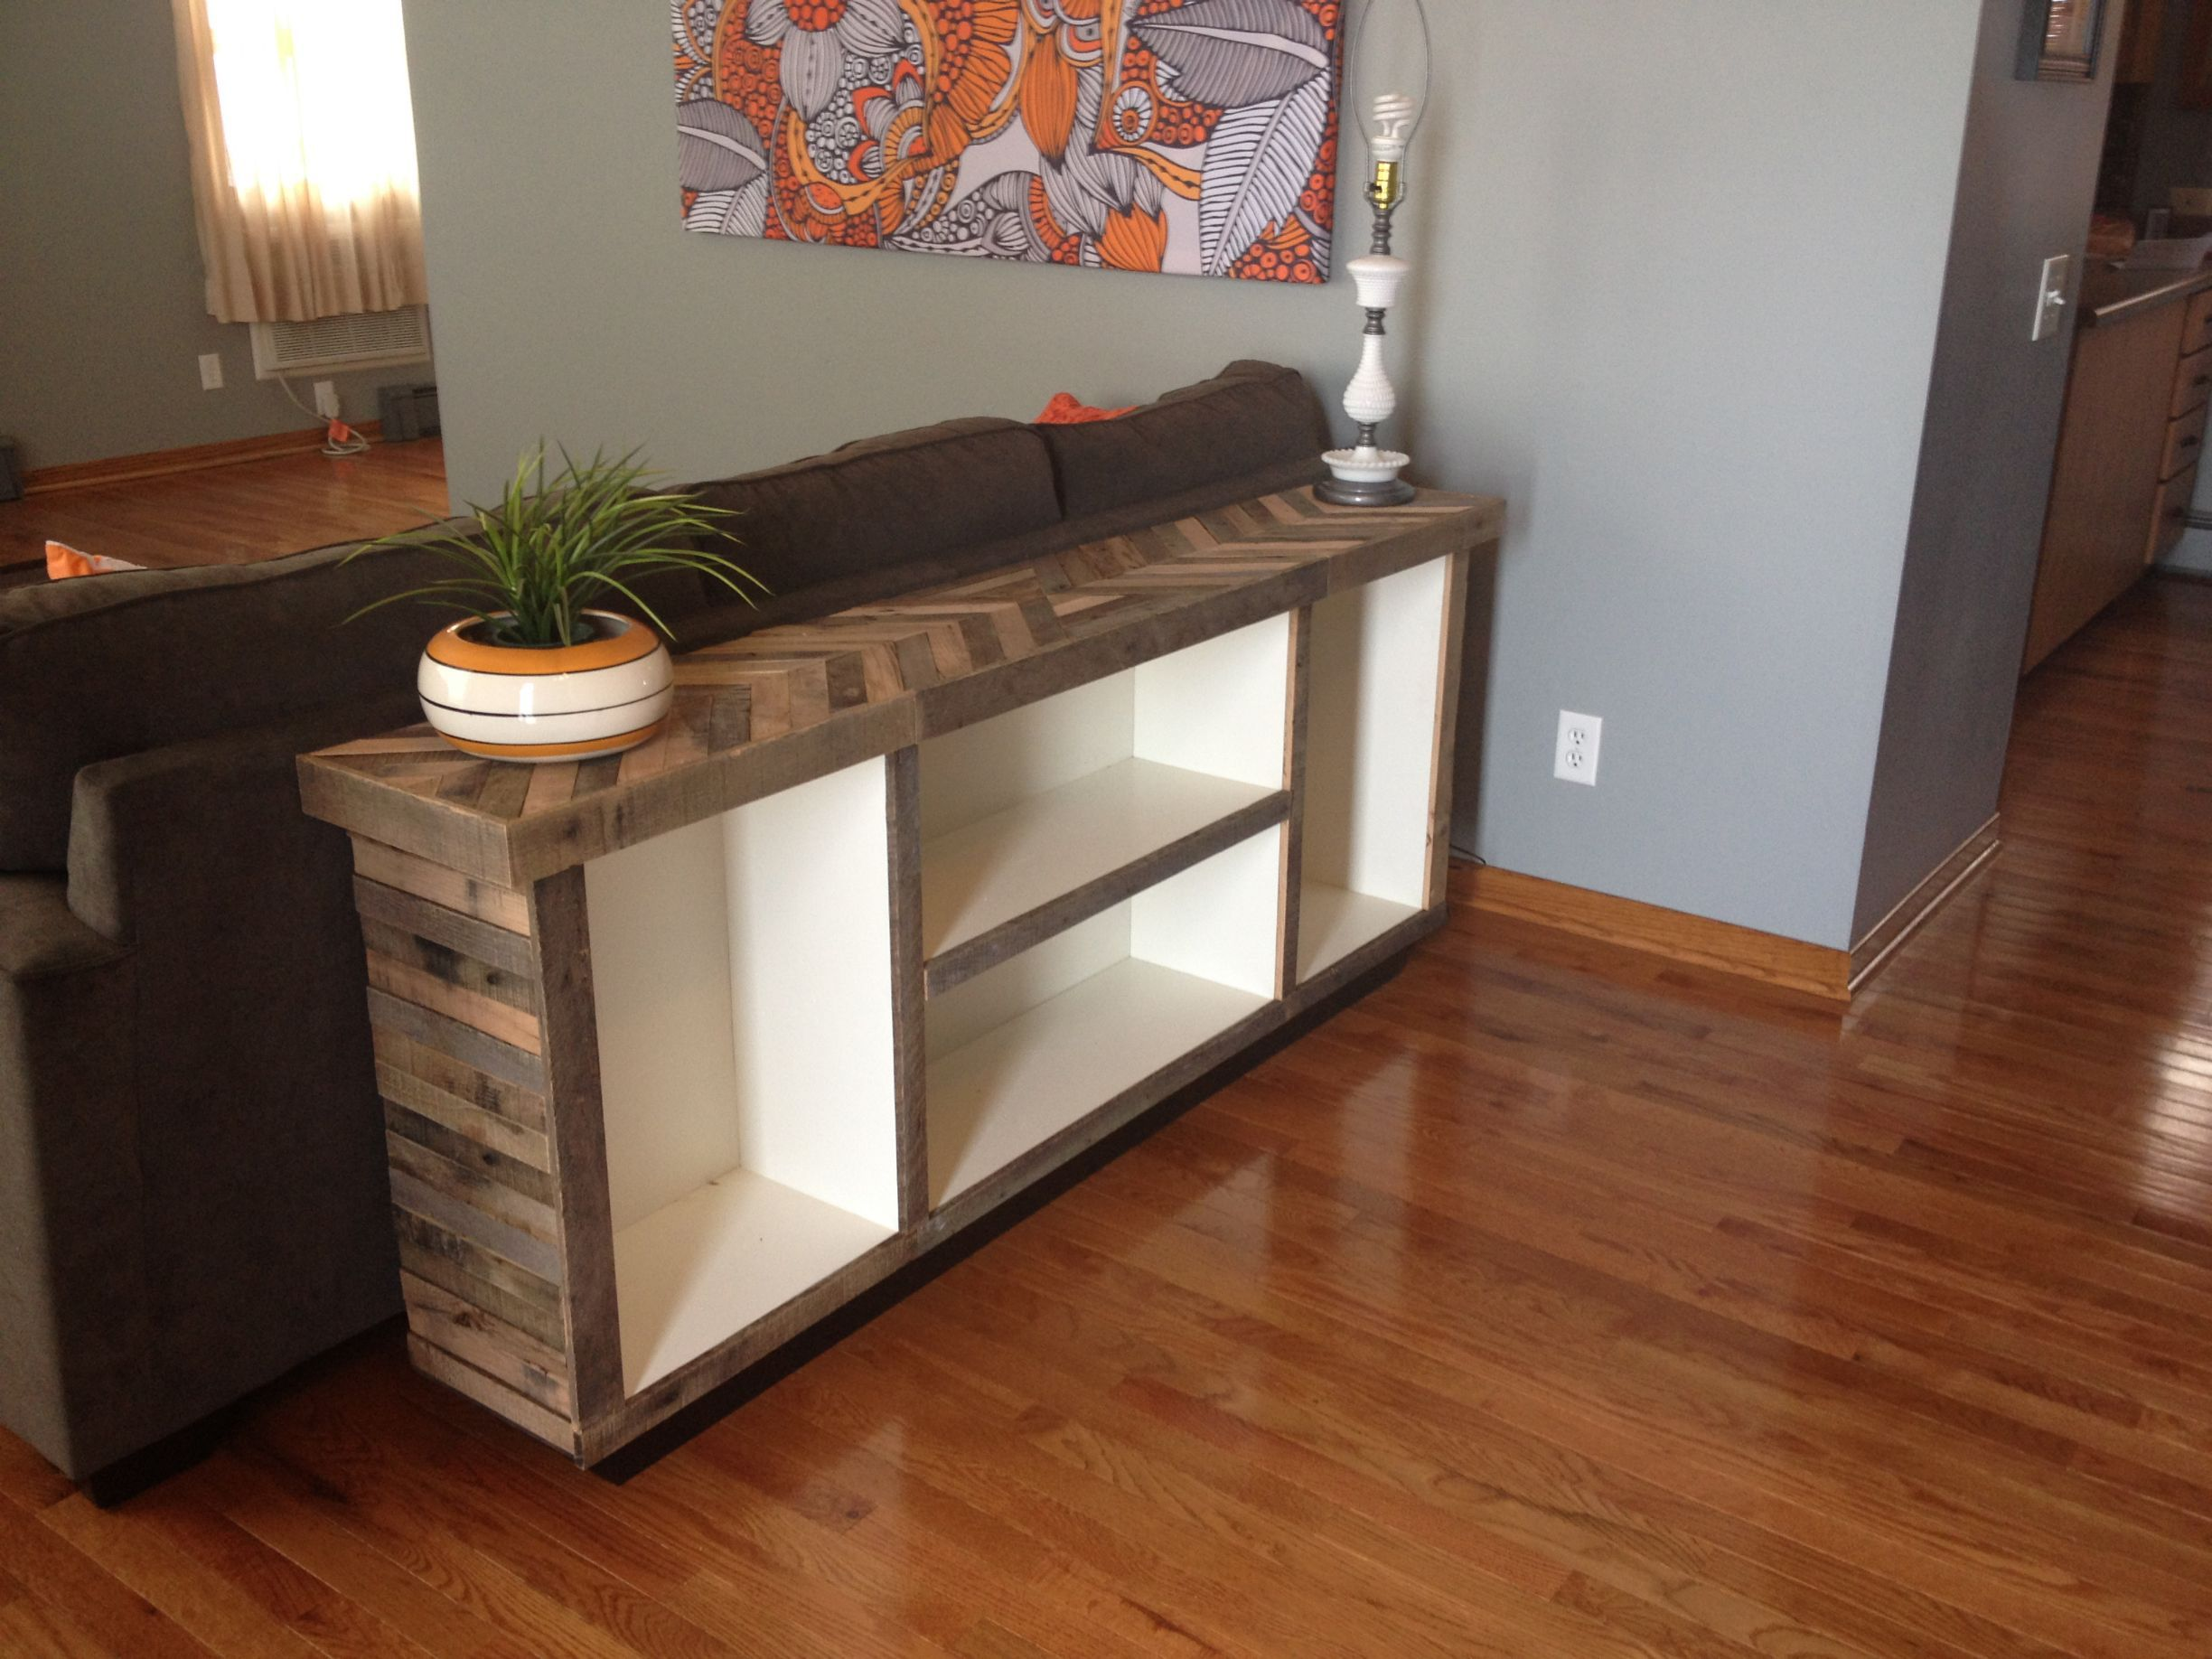 Building A Sofa Table Living Room Set Designs 12 Clever Ways To Repurpose Wooden Pallets With